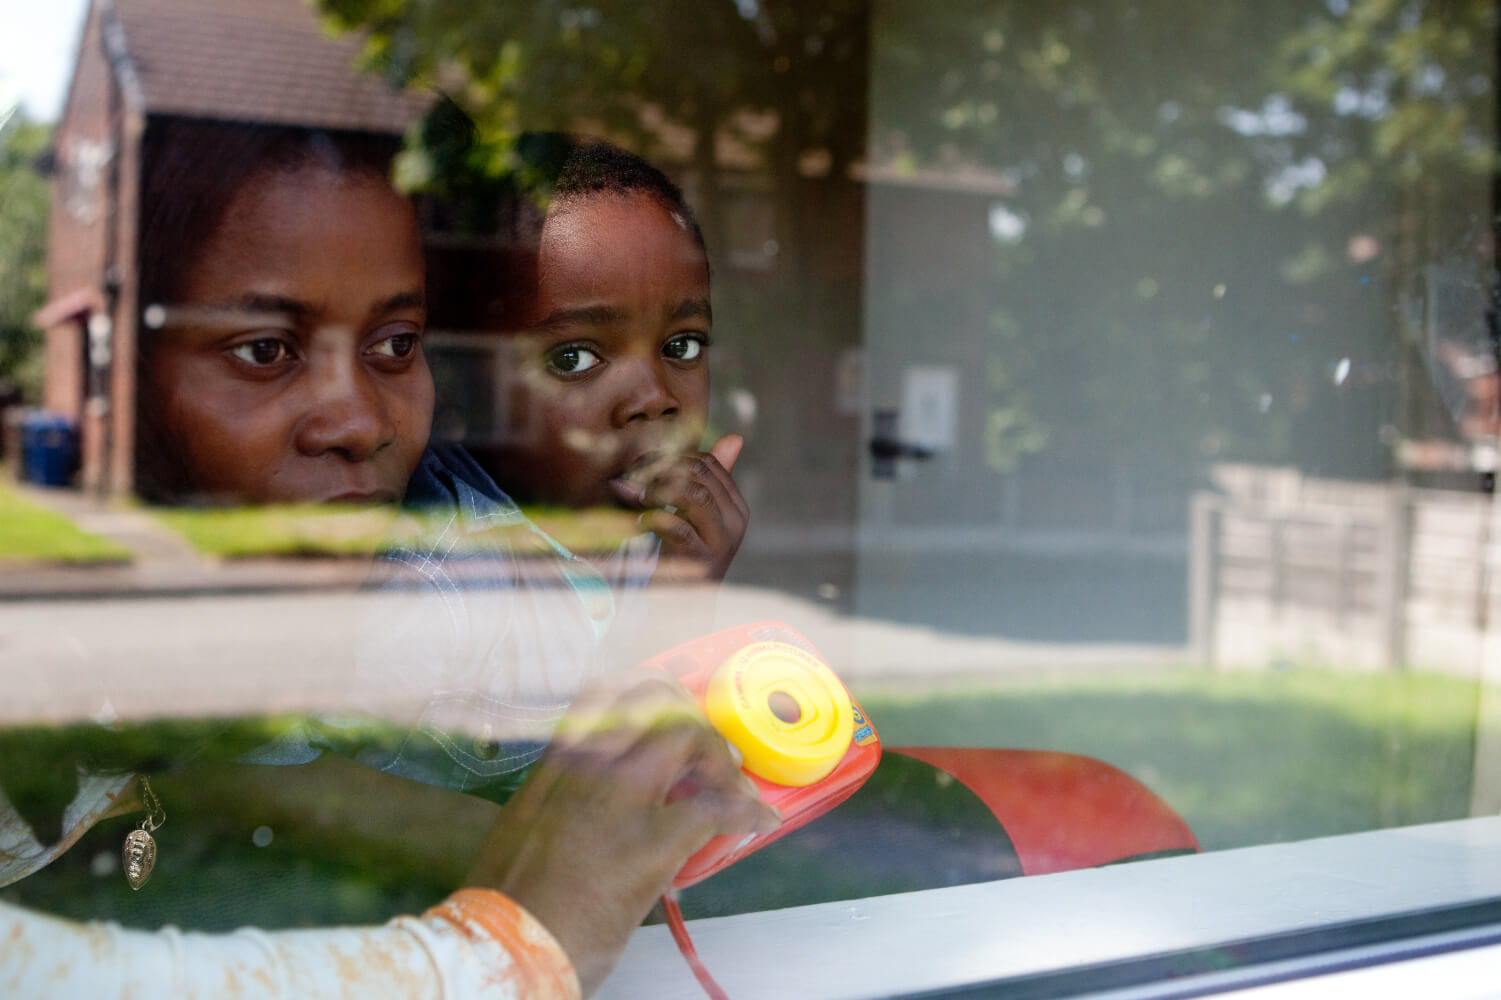 A mother and child looking out of a window